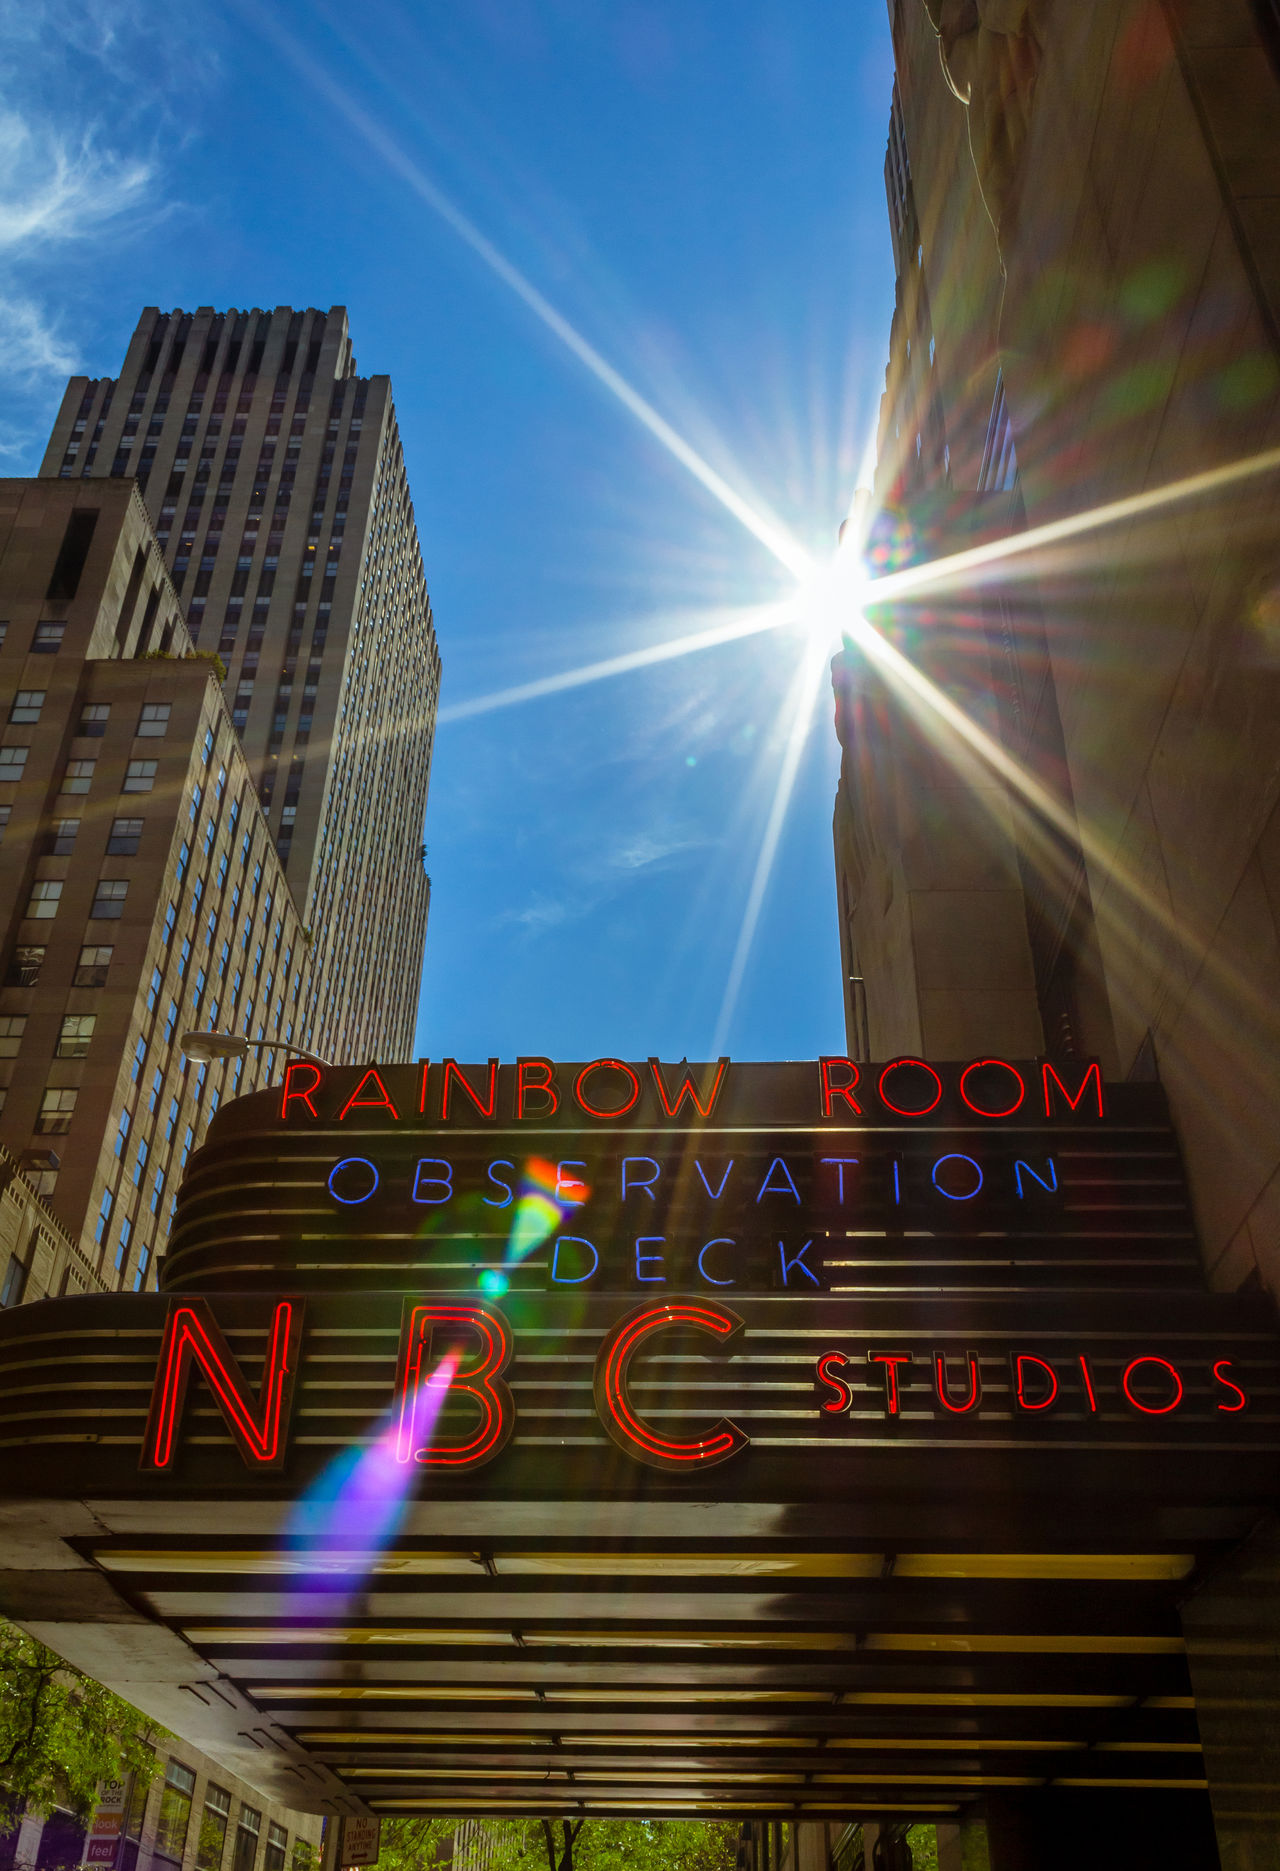 NBC studios entrance at Rockefeller Center - The Rainbow Room America Architecture Building Exterior Built Structure City Film Studio Lens Flare Low Angle View Nbc NBC Studios Neon Neon Lights New York New York City No People Outdoors Rainbow Room Rockefeller Center Signs Sky USA